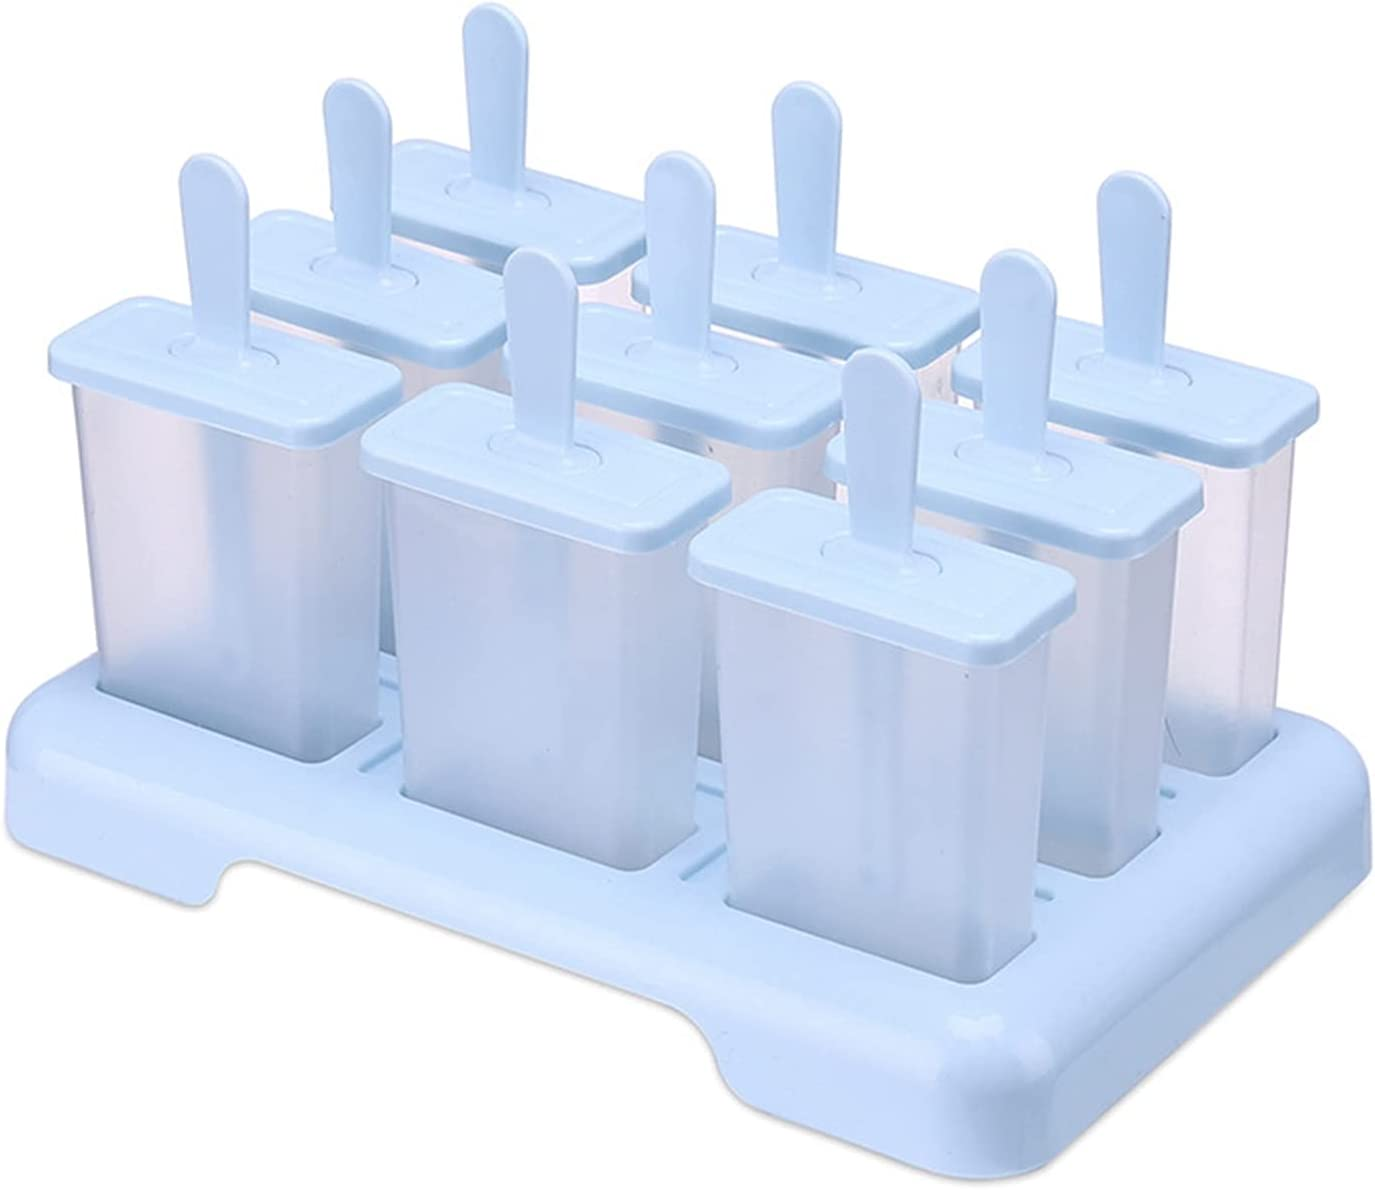 New products world's highest quality popular Popsicle Molds for Popular standard Kids 9 Cavity Reusable Silicone Mak